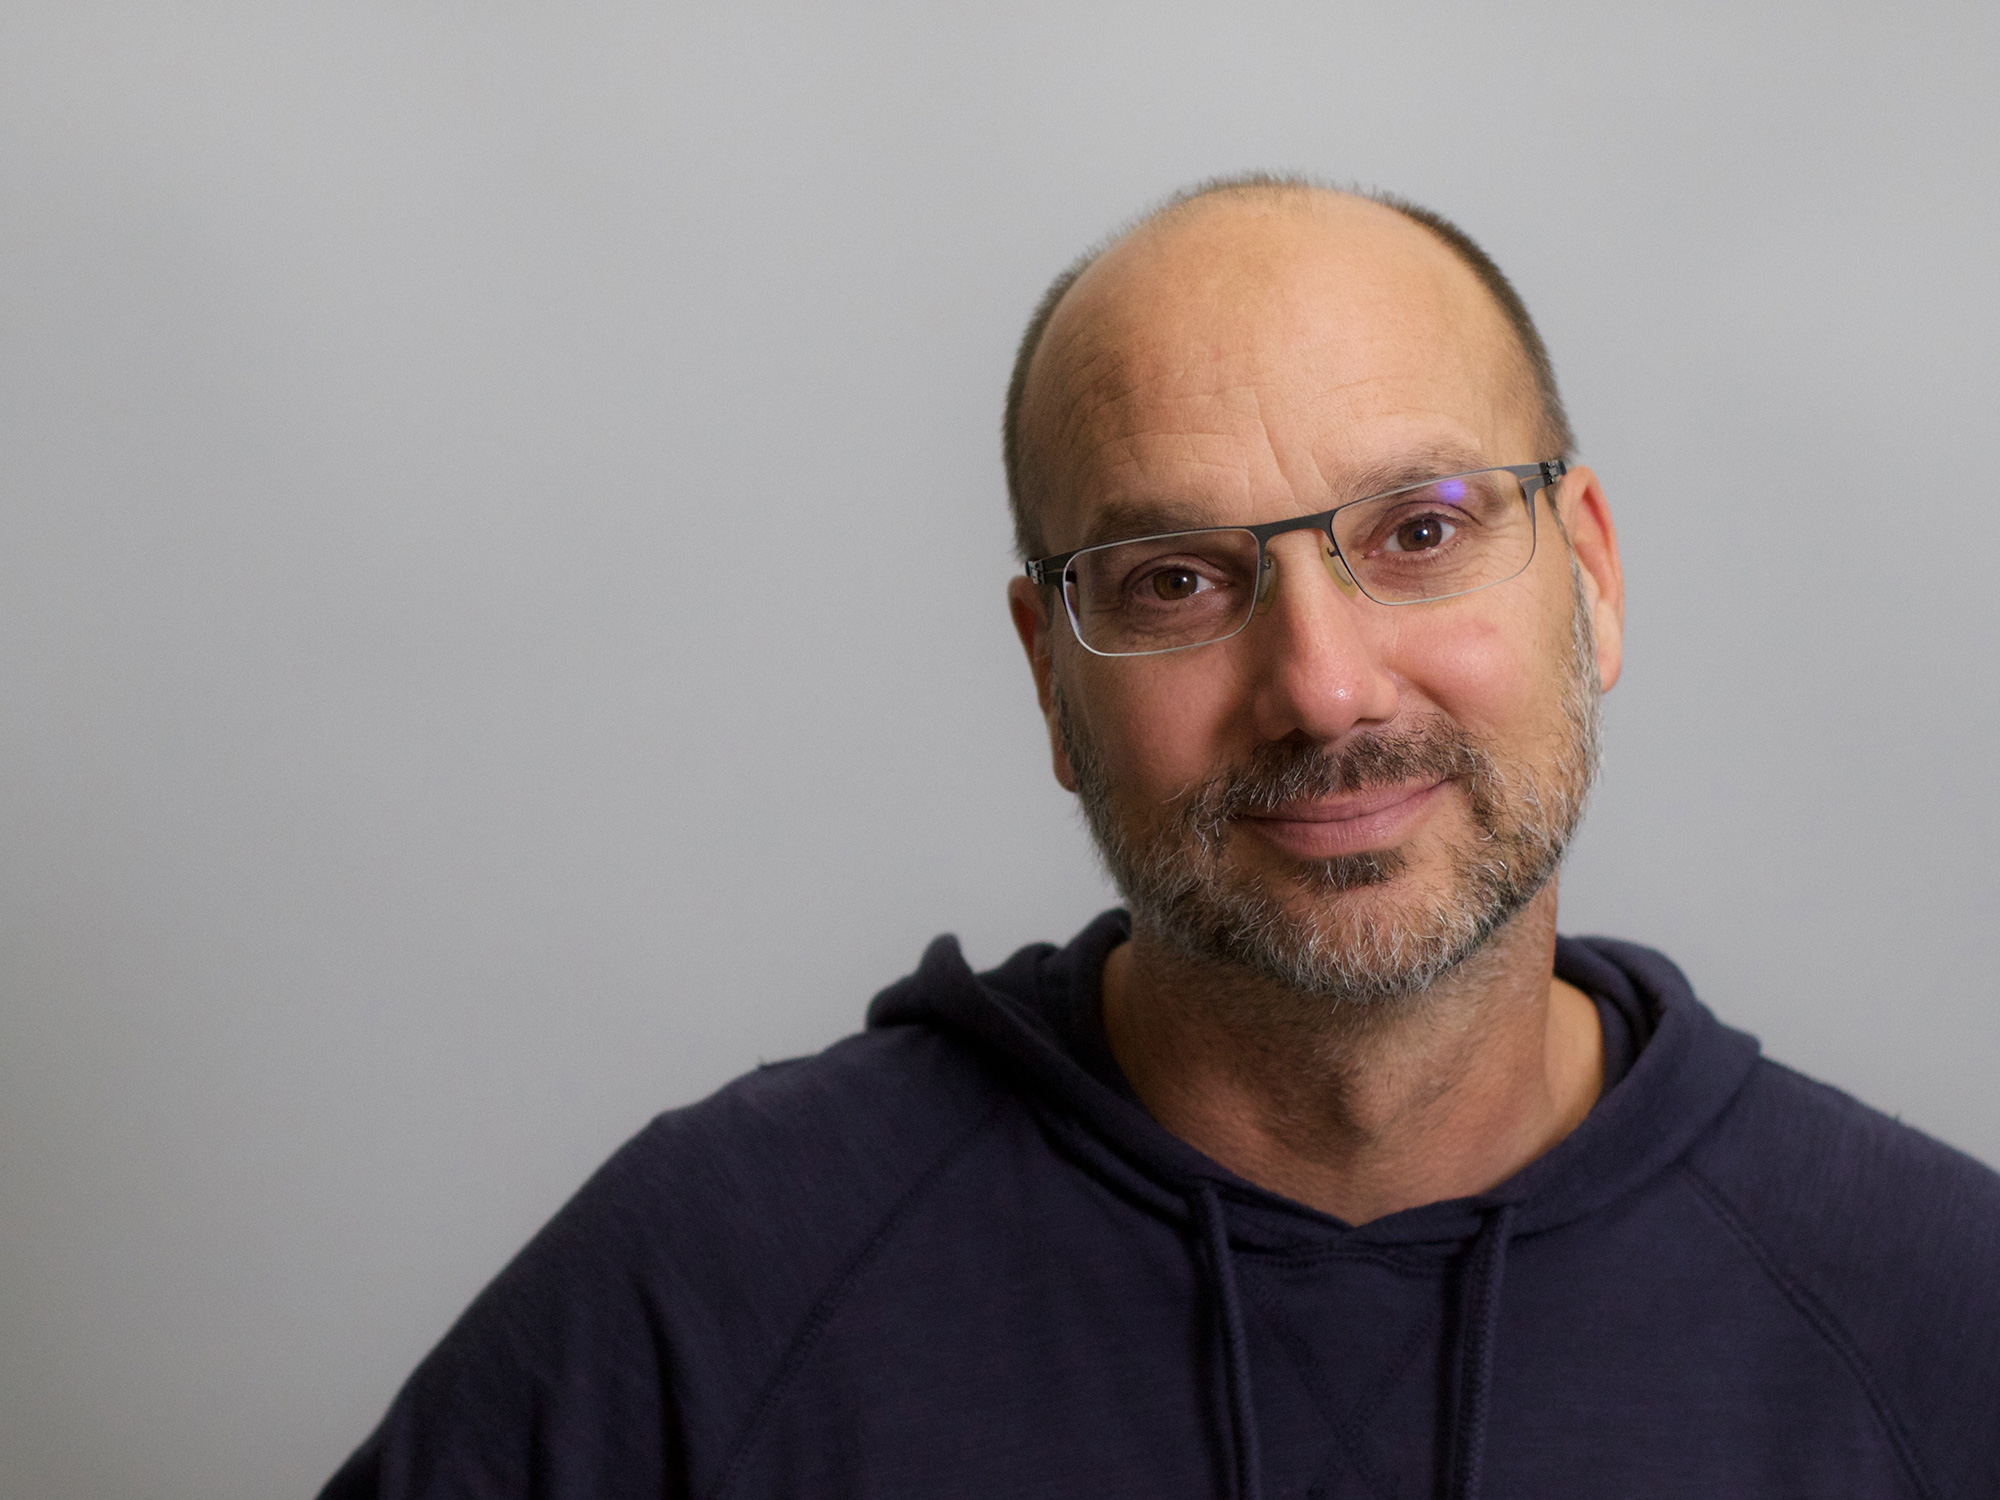 Andy Rubin reportedly got 90M exit package from Google amid sexual-misconduct investigation photo